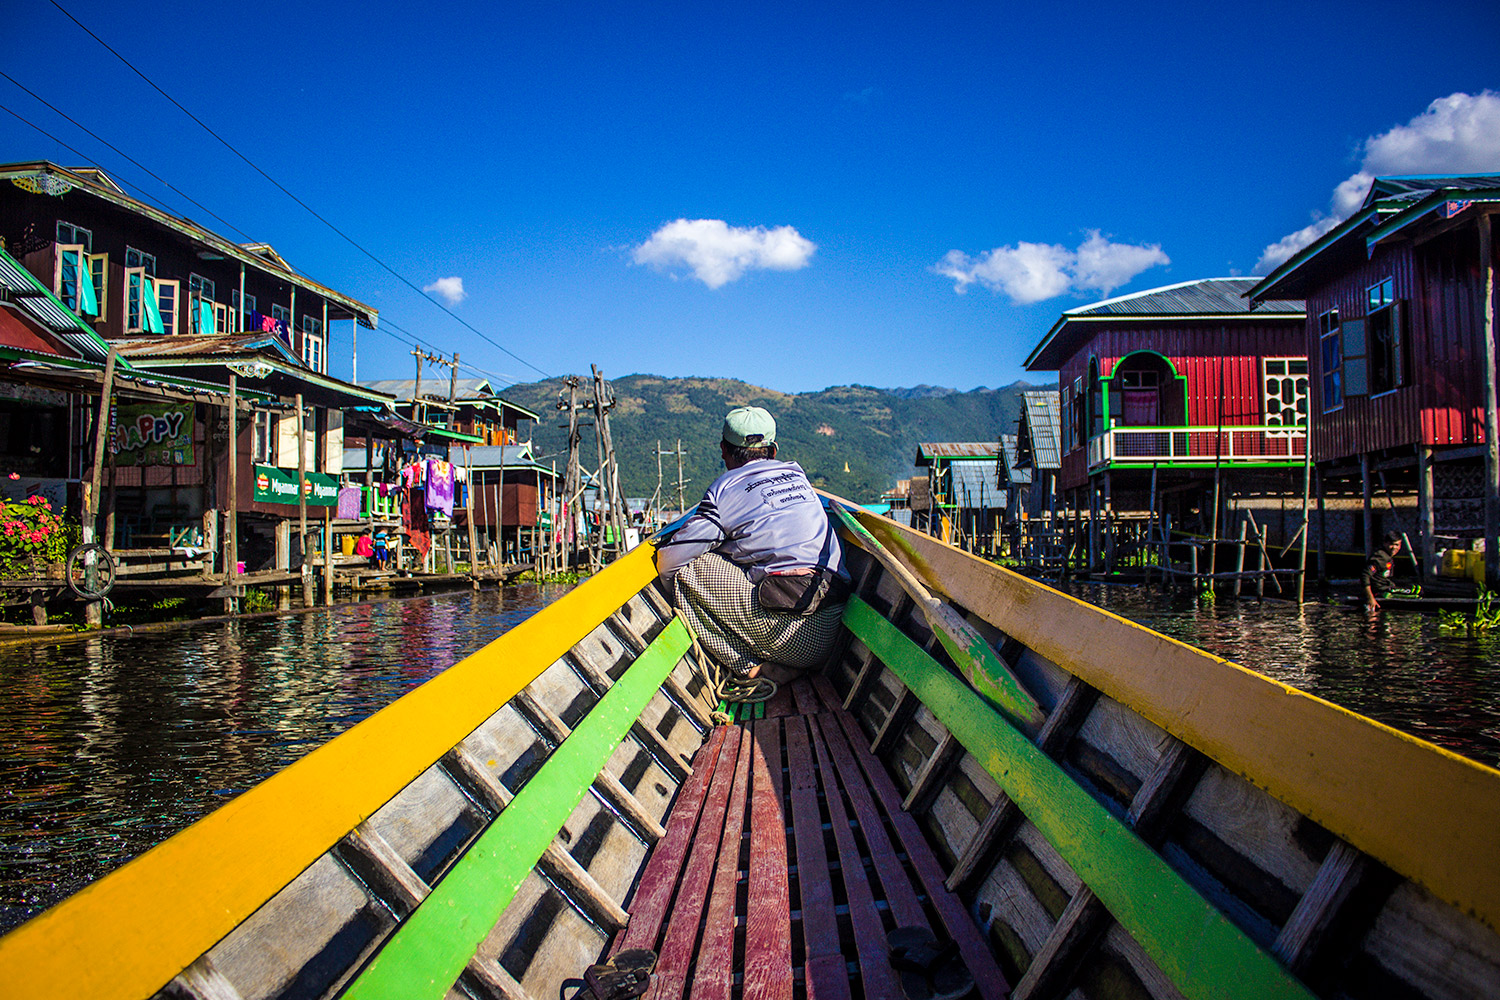 boater in inle lake, myanmar